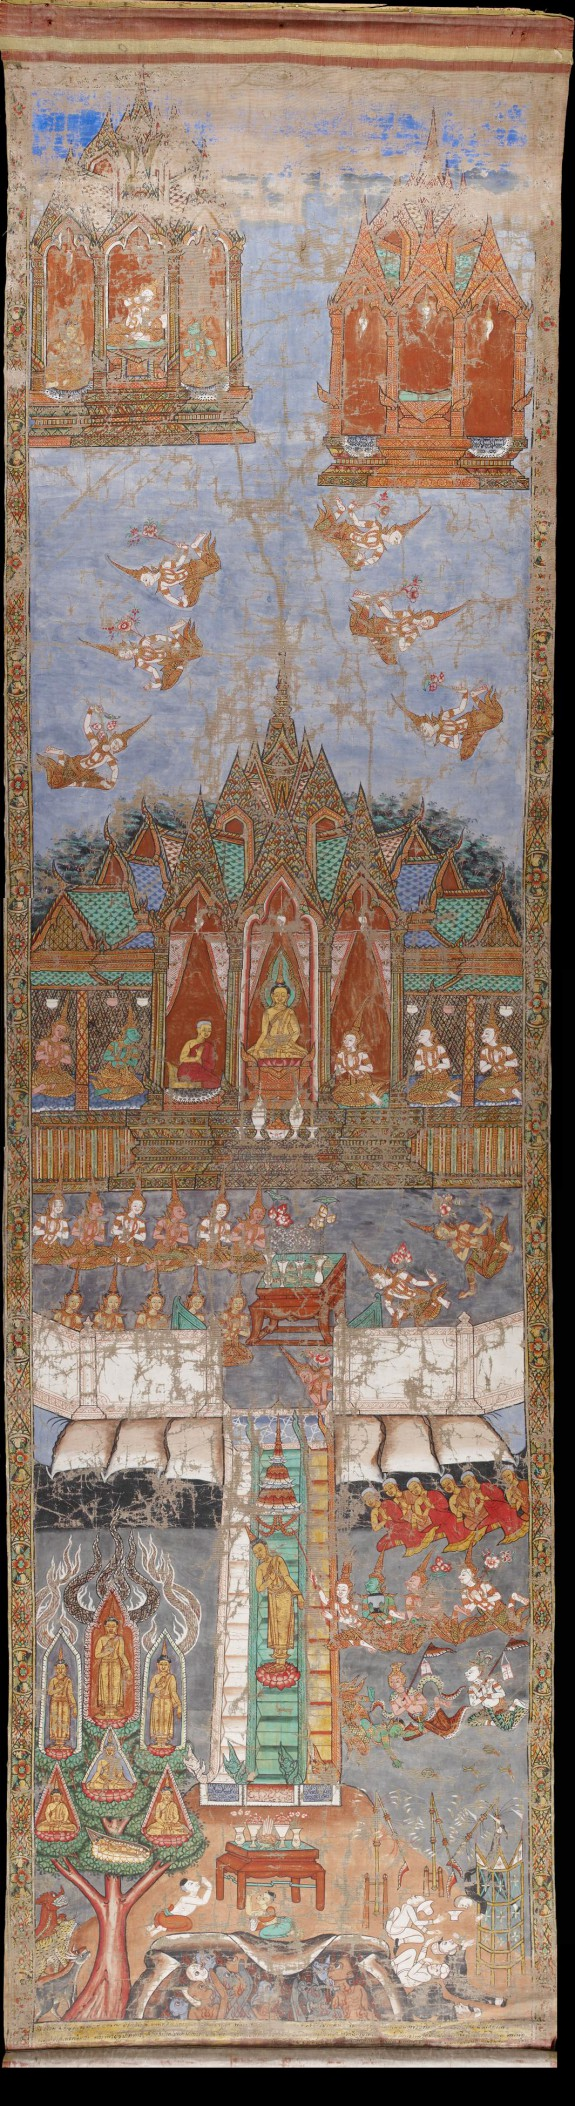 The Buddha's Descent from Heaven